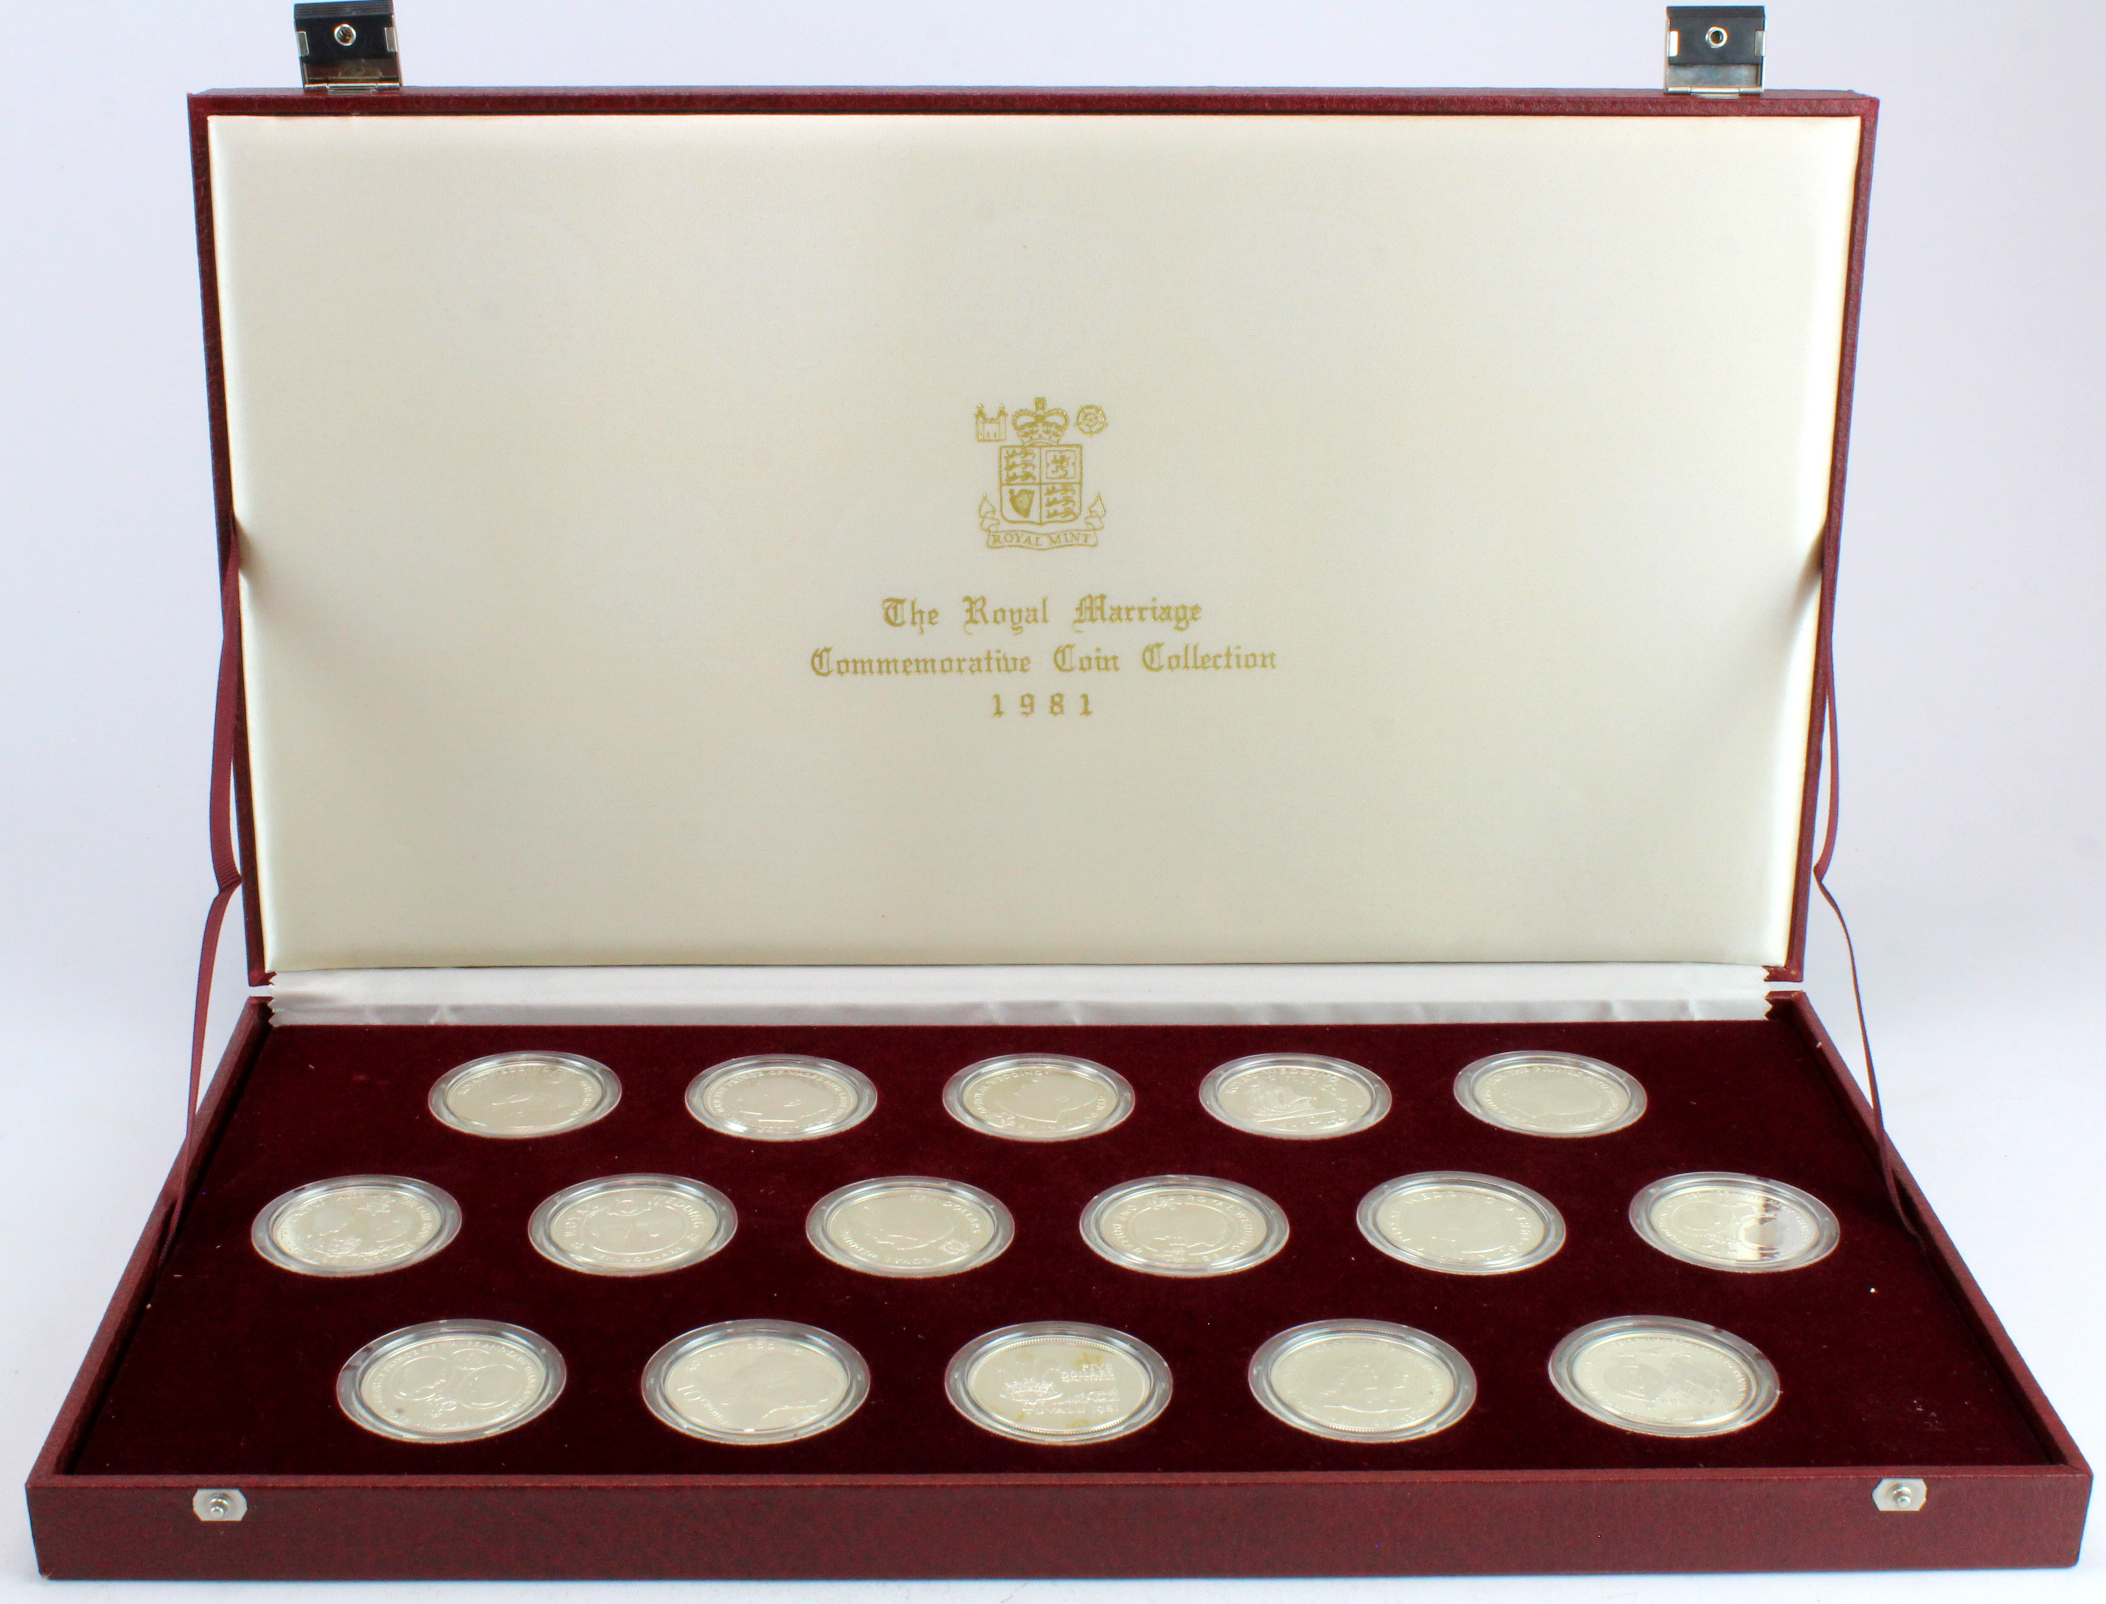 The Royal Marriage Commemorative Coin Collection 1981, the sixteen coin world silver proof crown set